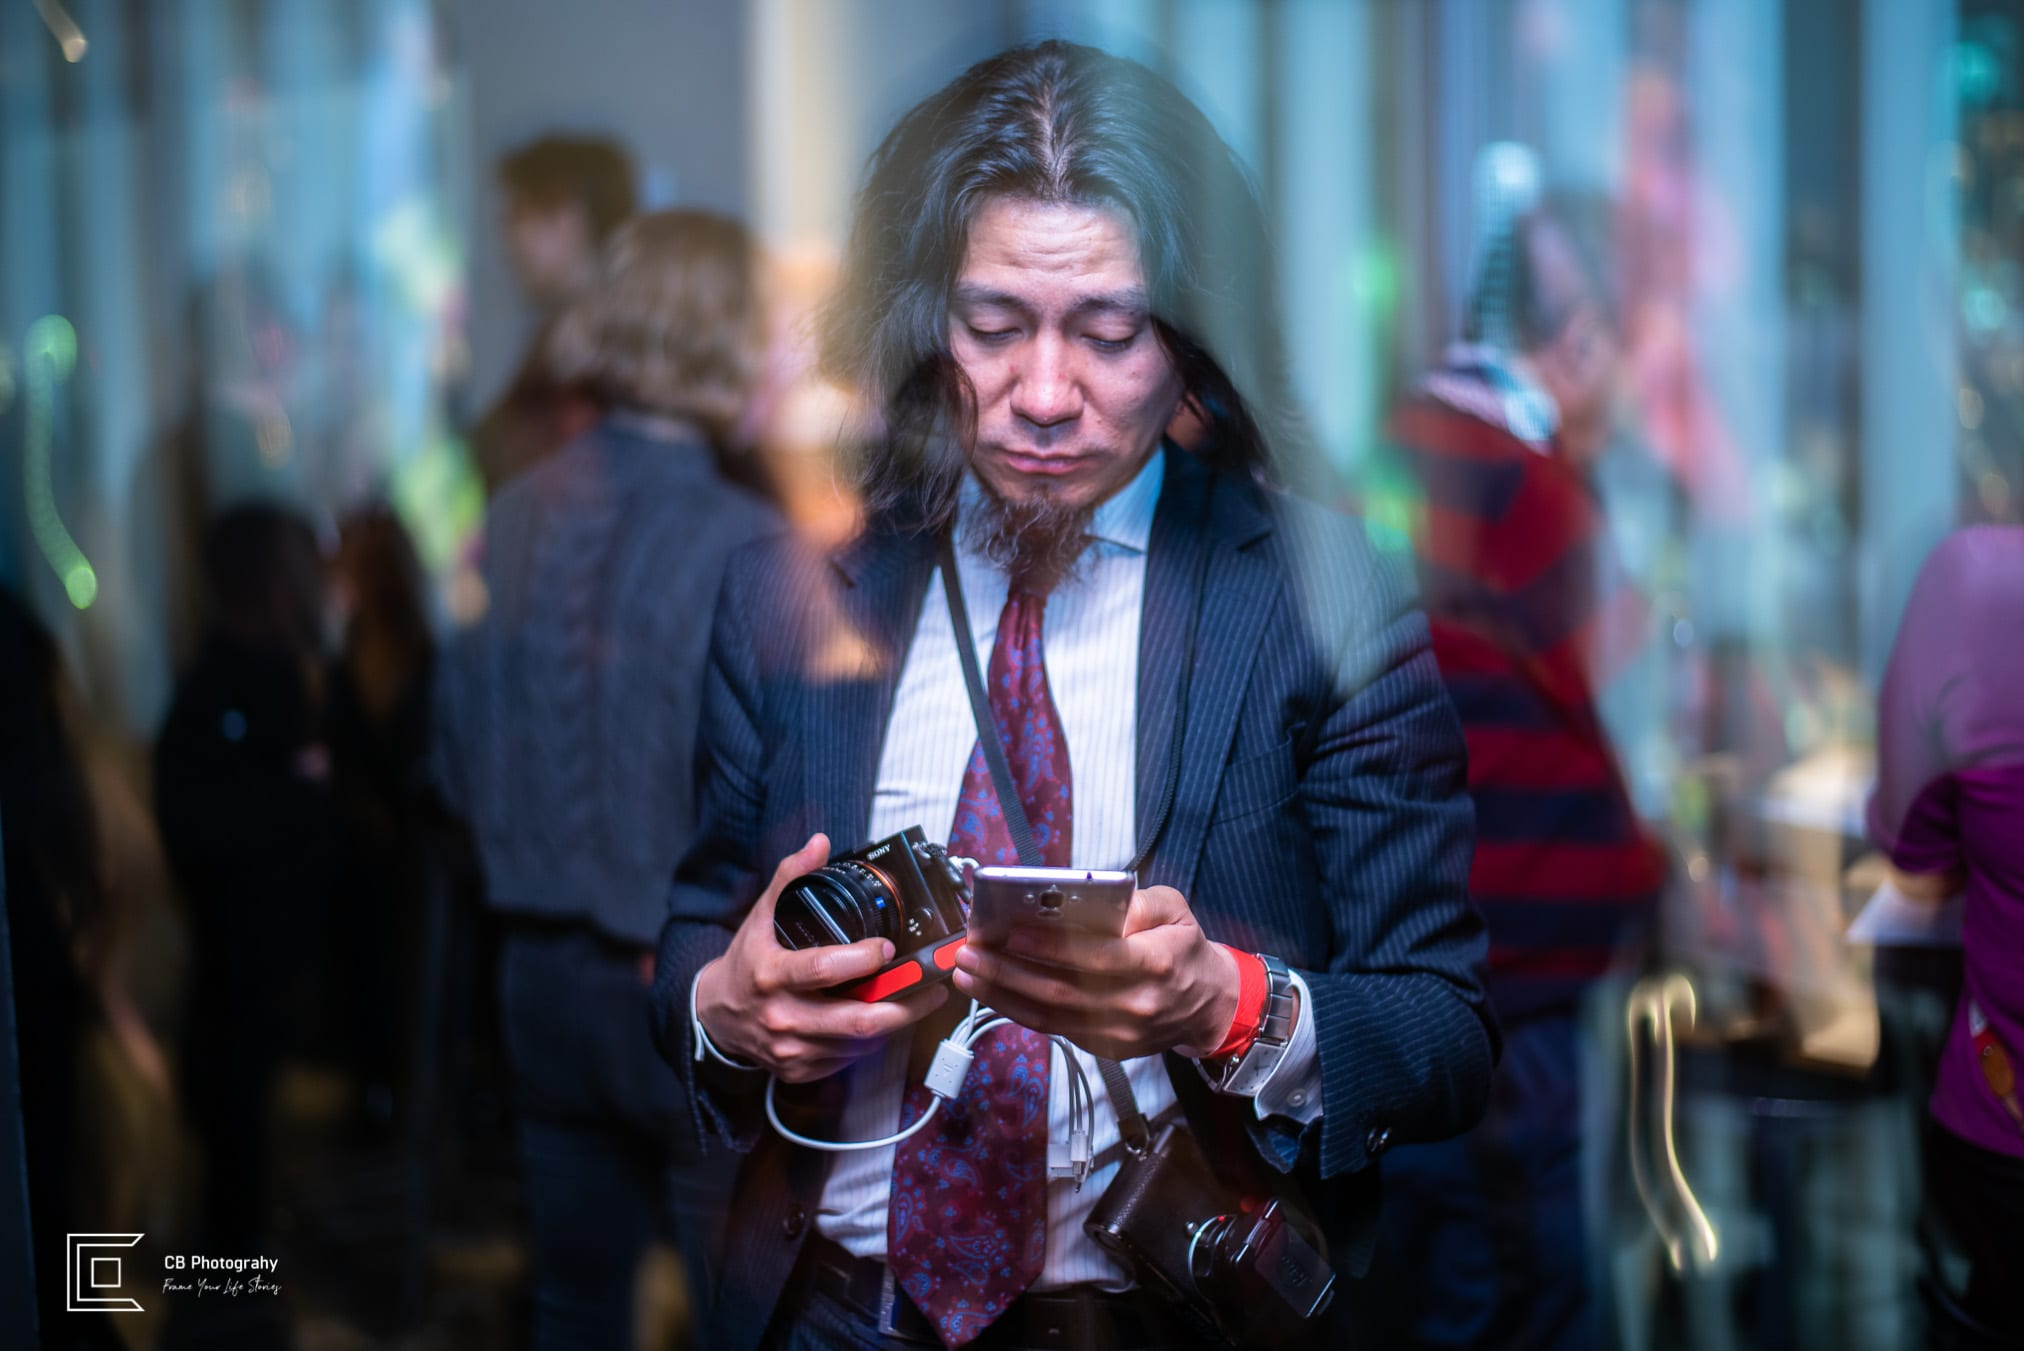 Portrait taken during an event in Tokyo by Cristian Bucur